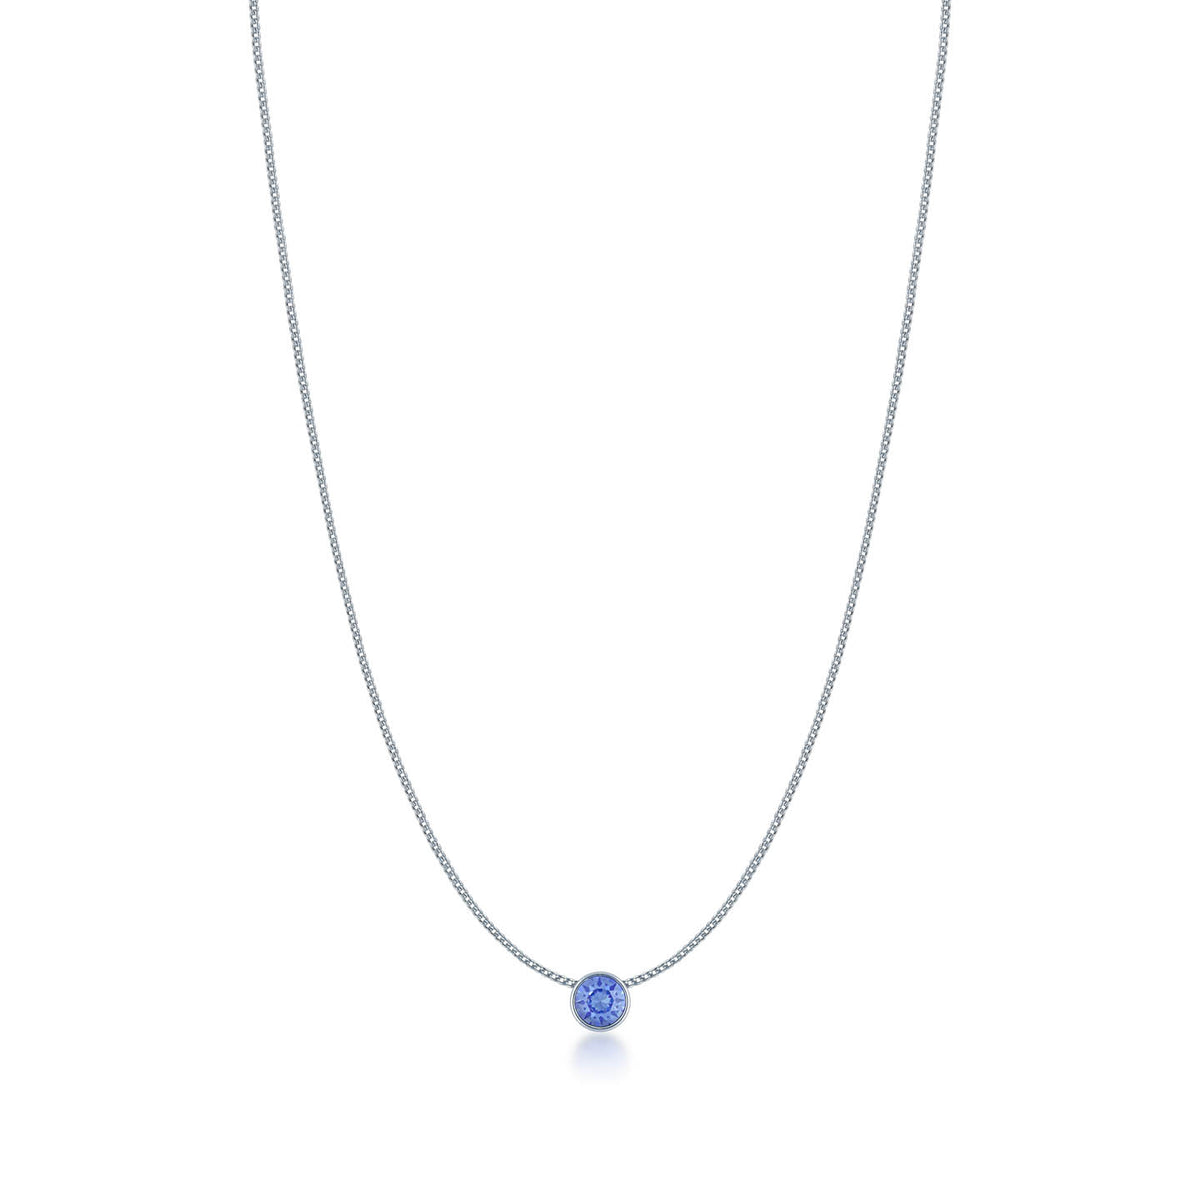 Harley Small Pendant Necklace with Blue Light Sapphire Round Crystals from Swarovski Silver Toned Rhodium Plated - Ed Heart